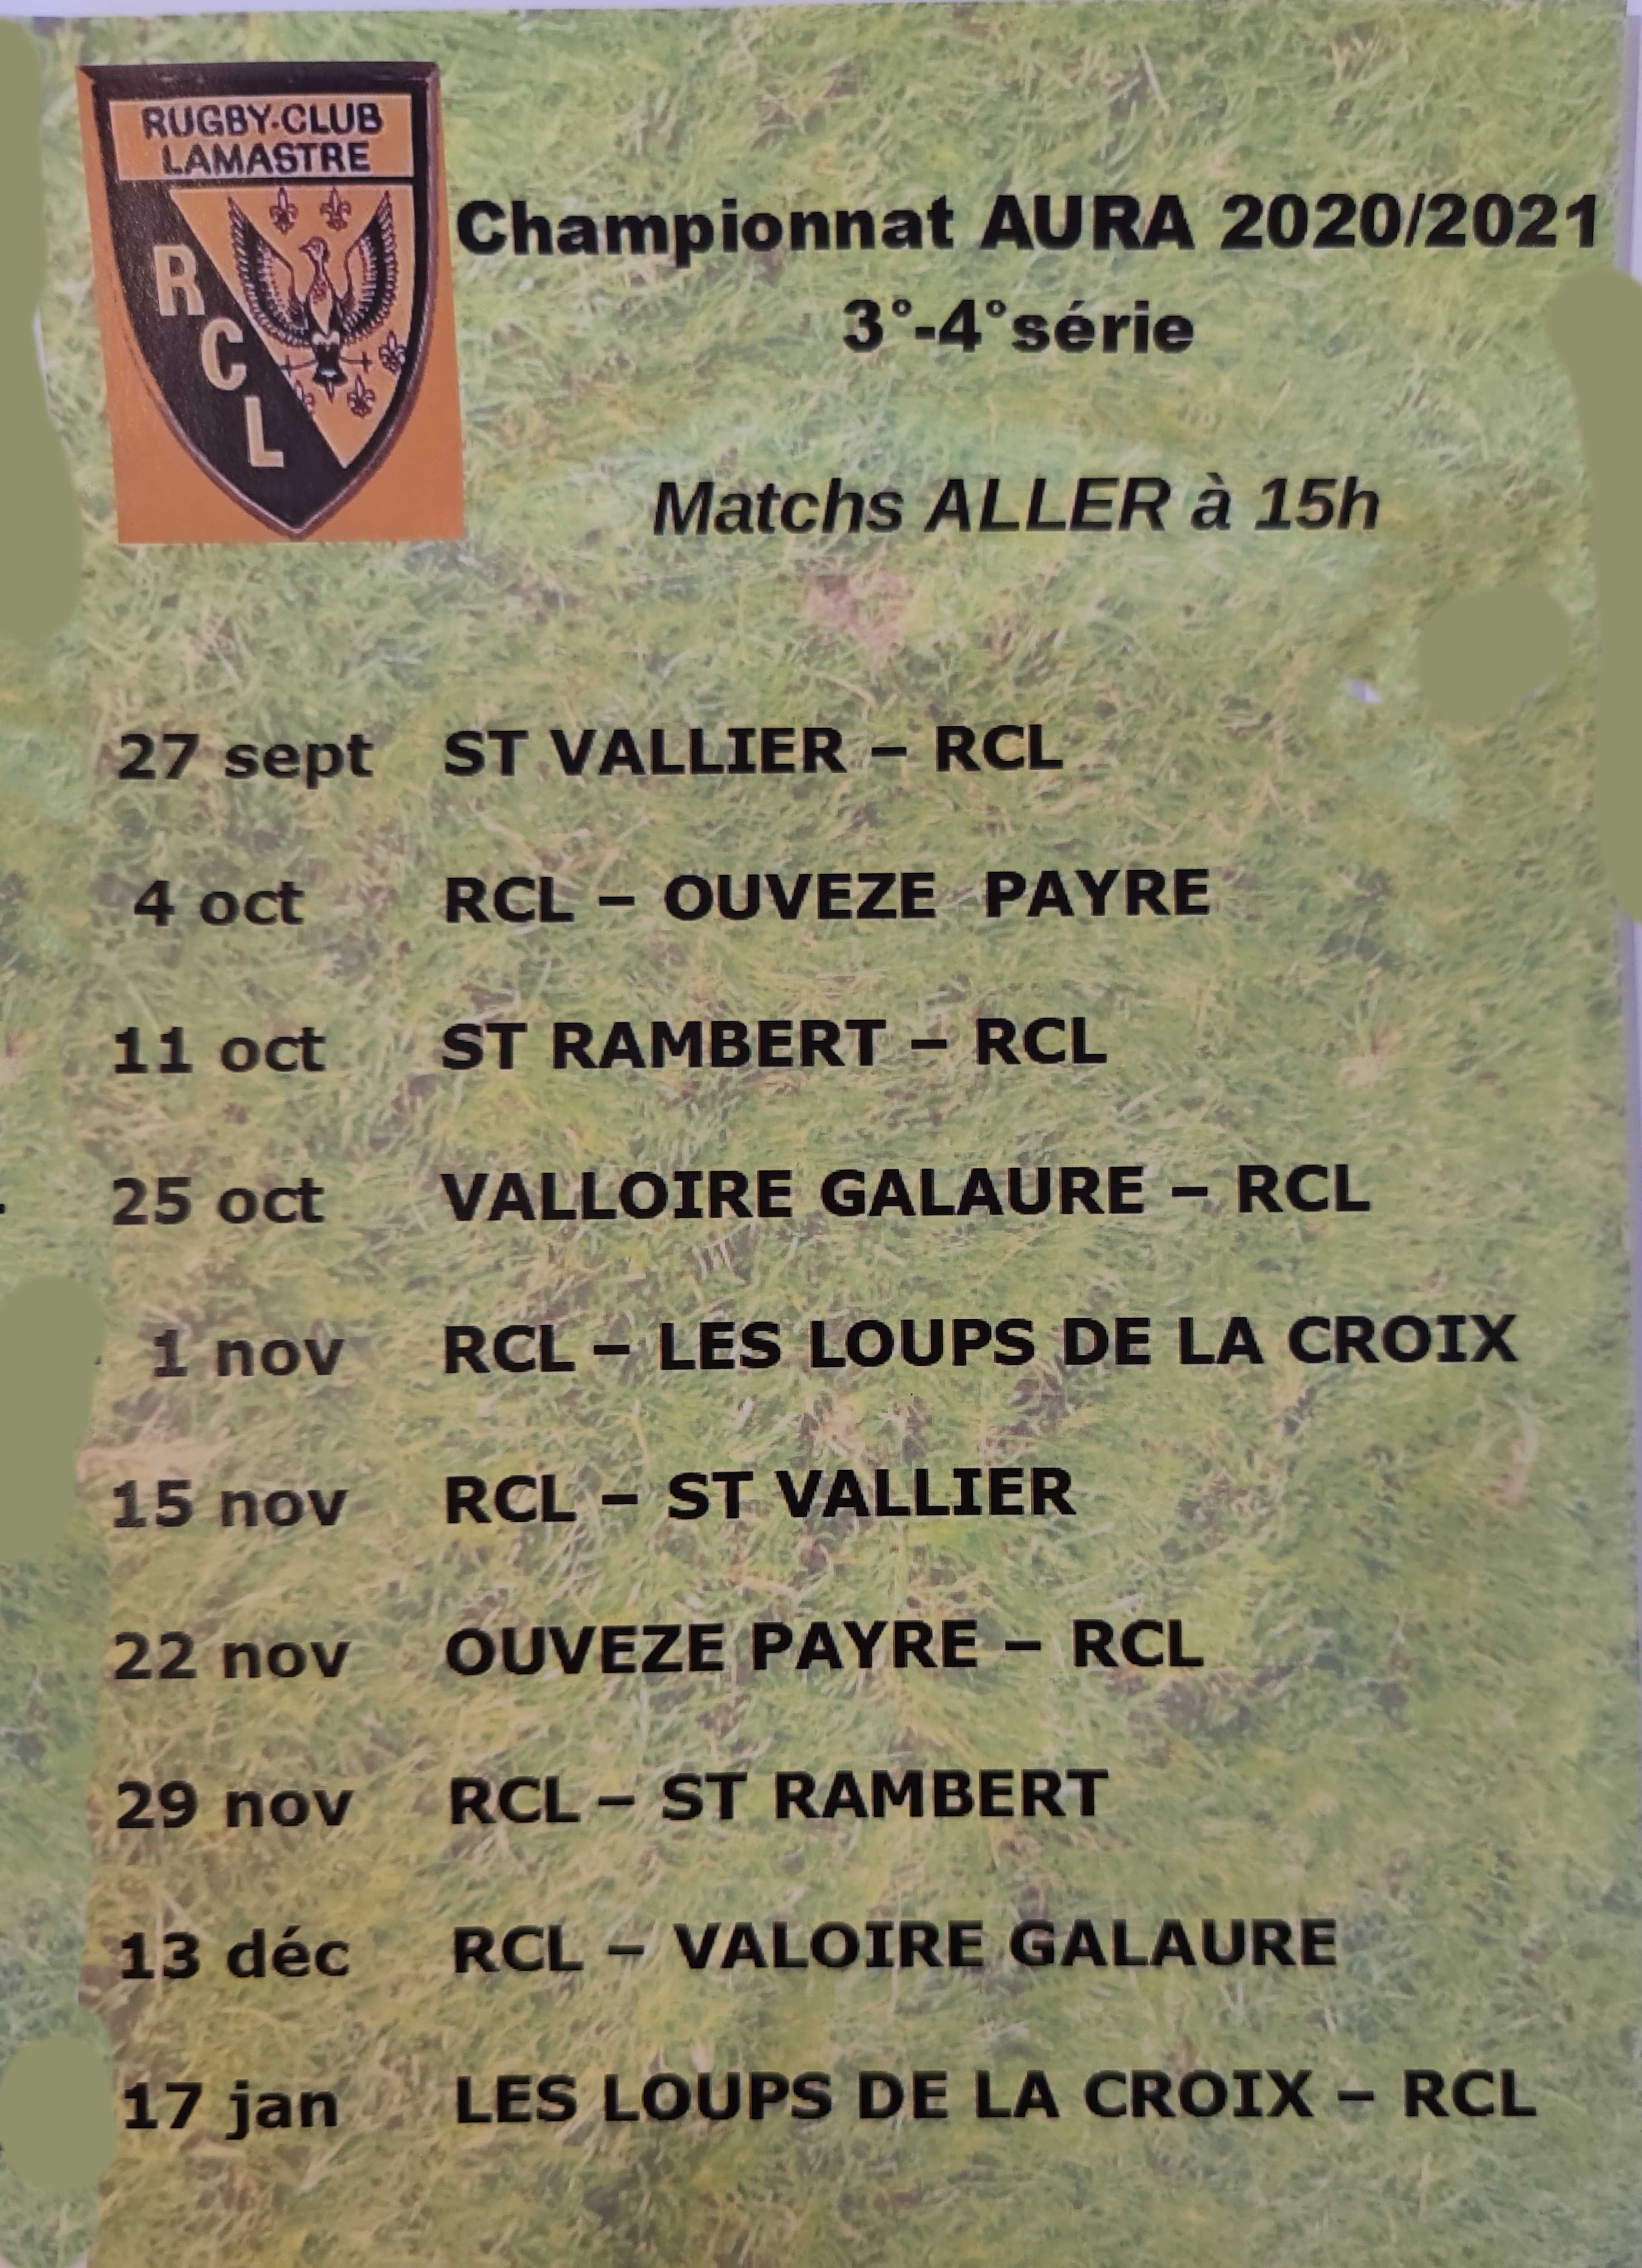 PROGRAMME match aller rugby lamastre 2020 2021 aura F